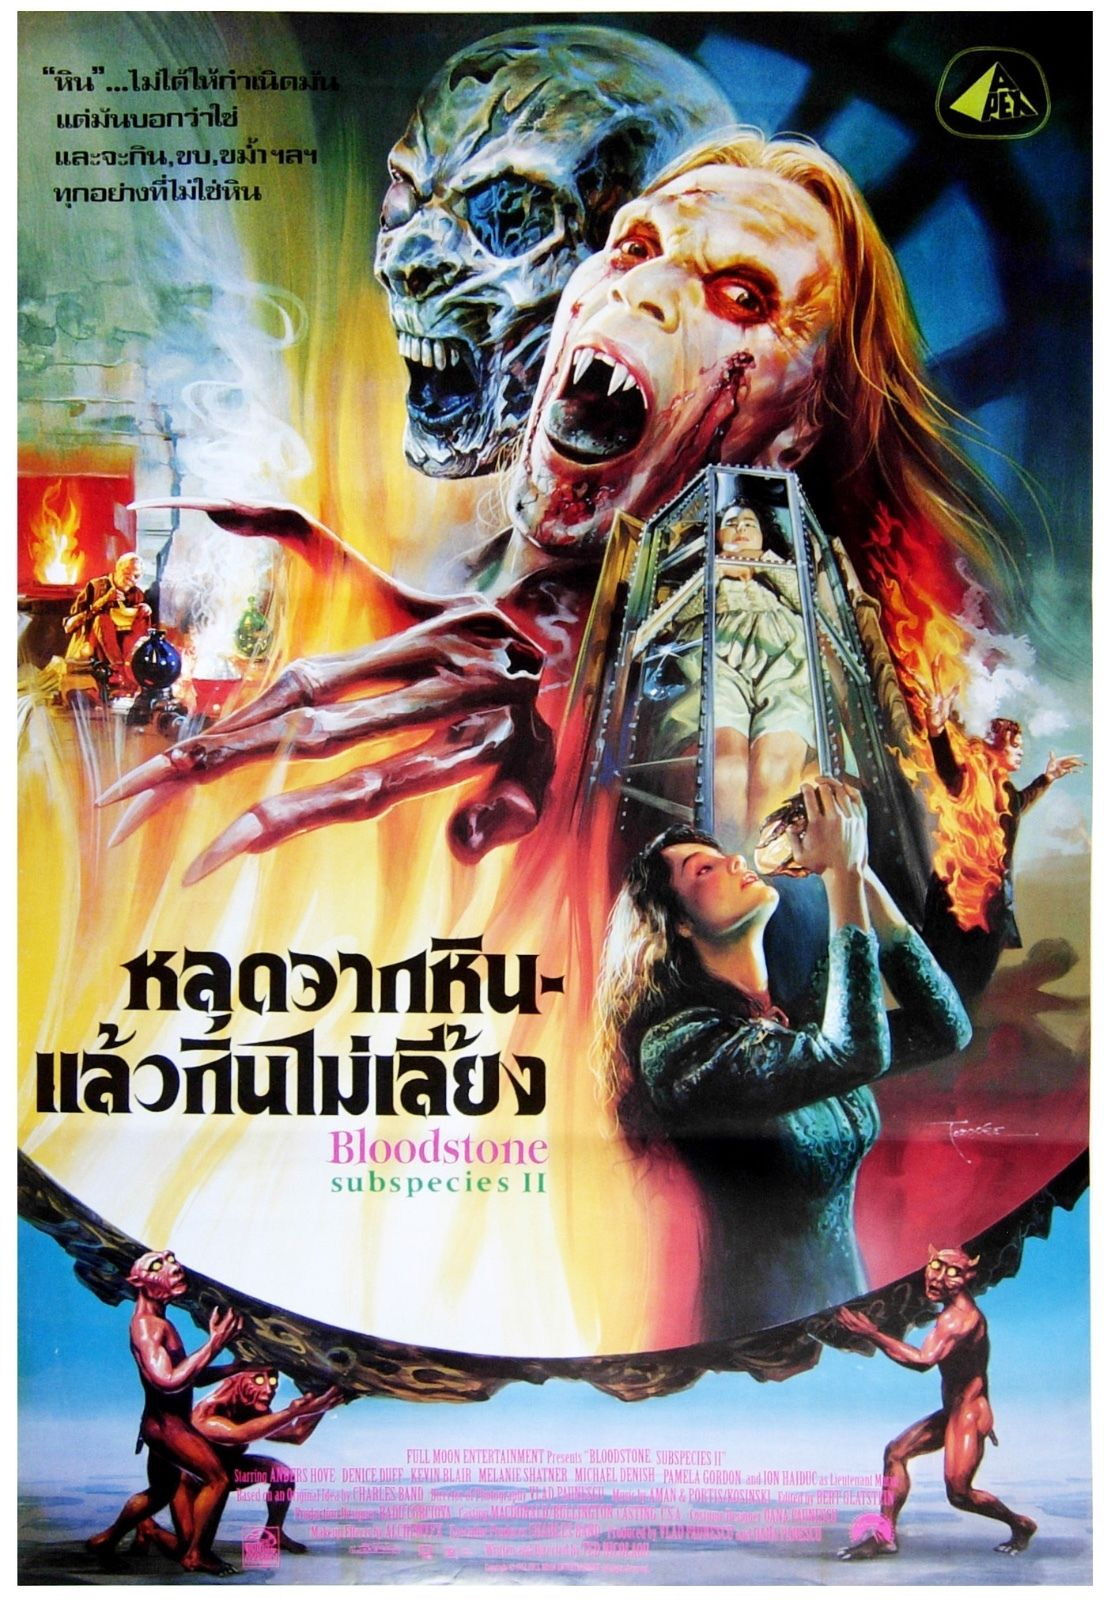 73110-Bloodstone-Subspecies-II-1993-Cult-Classic-Wall-Print-Poster-Affiche